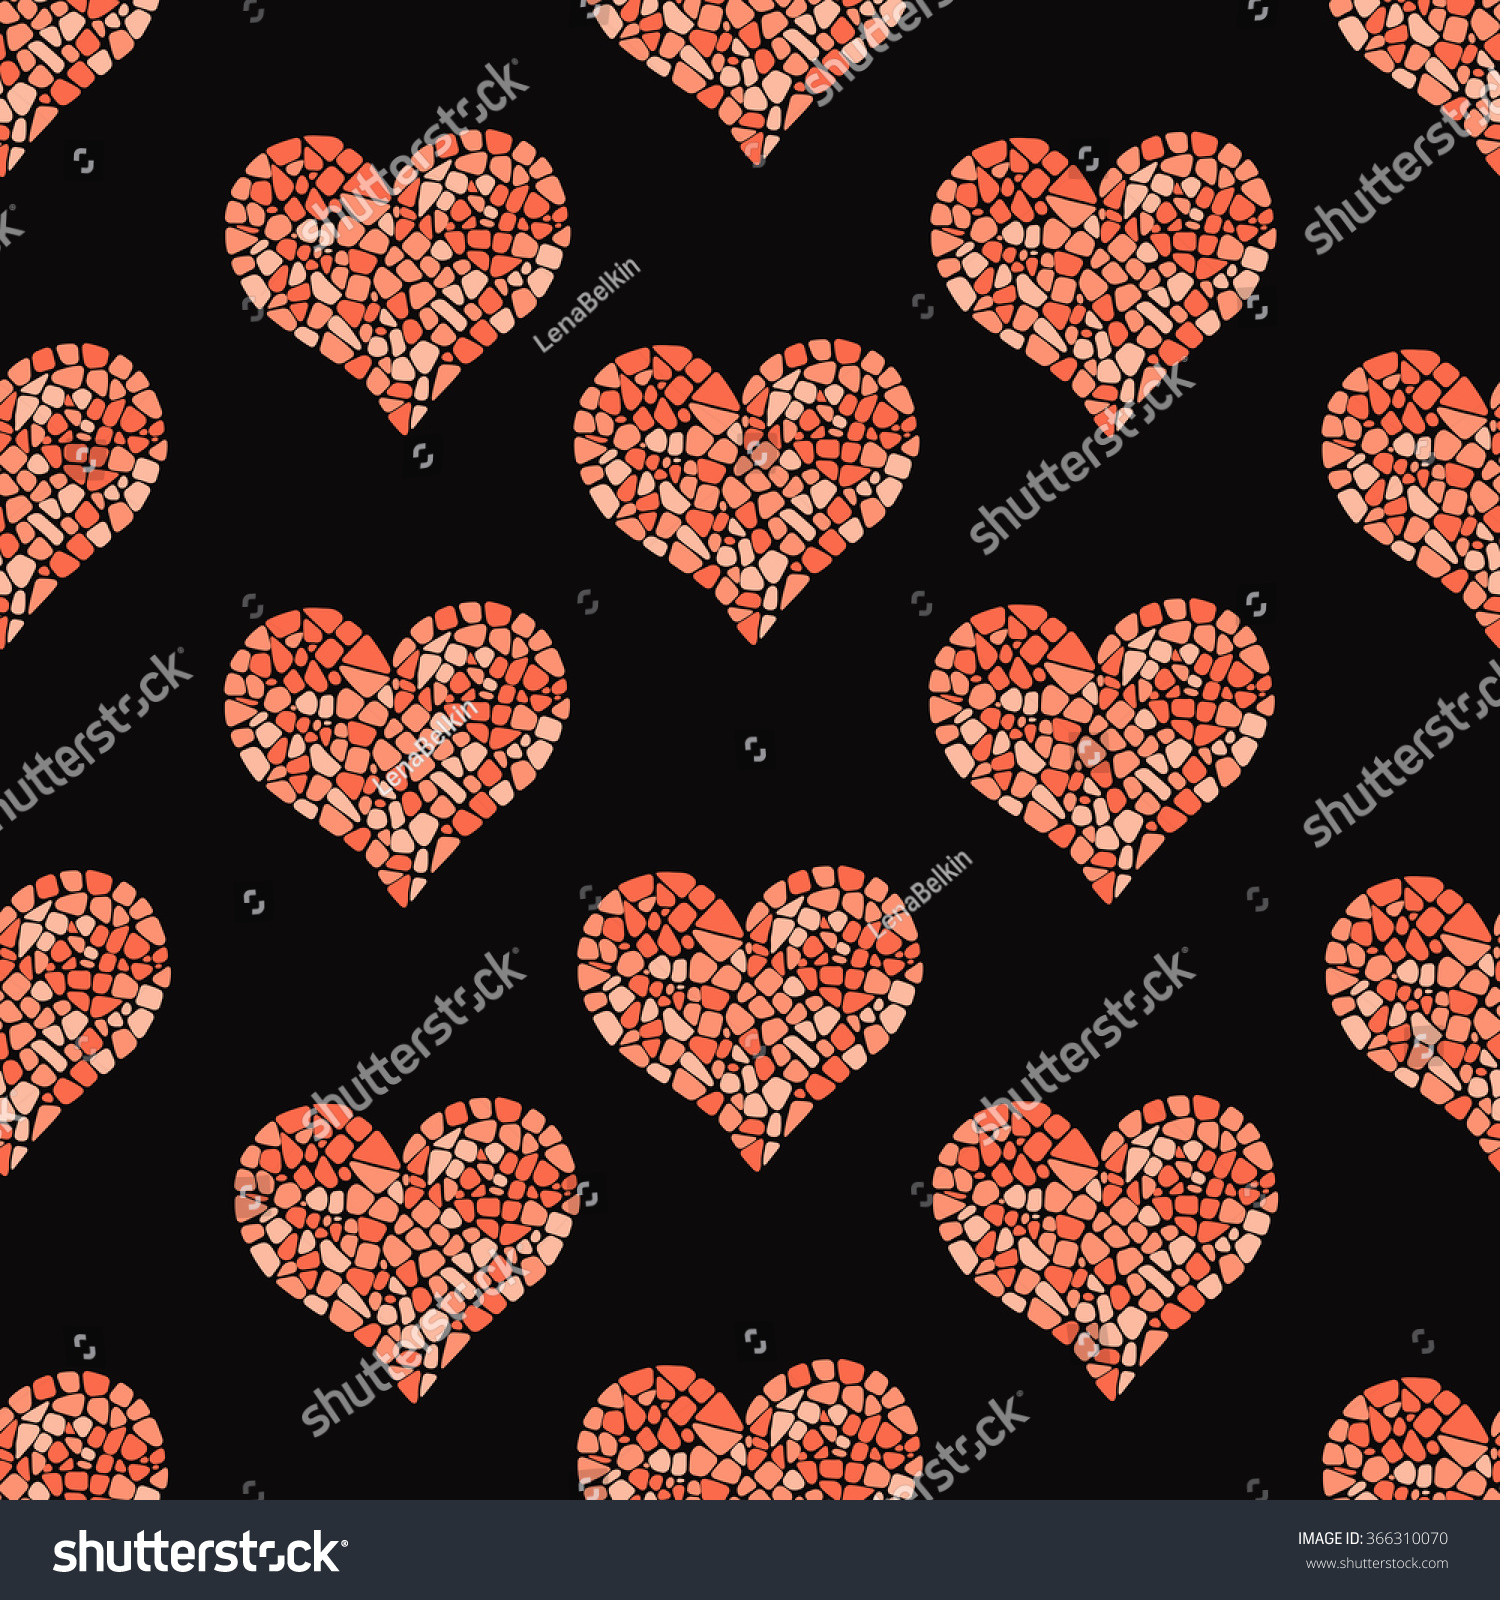 Romantic vector seamless background greeting card wallpaper vector art -  Vectors Illustrations Footage Music Mosaic Heart Seamless Pattern Romantic Background Design For Greeting Cards Wrapping Paper